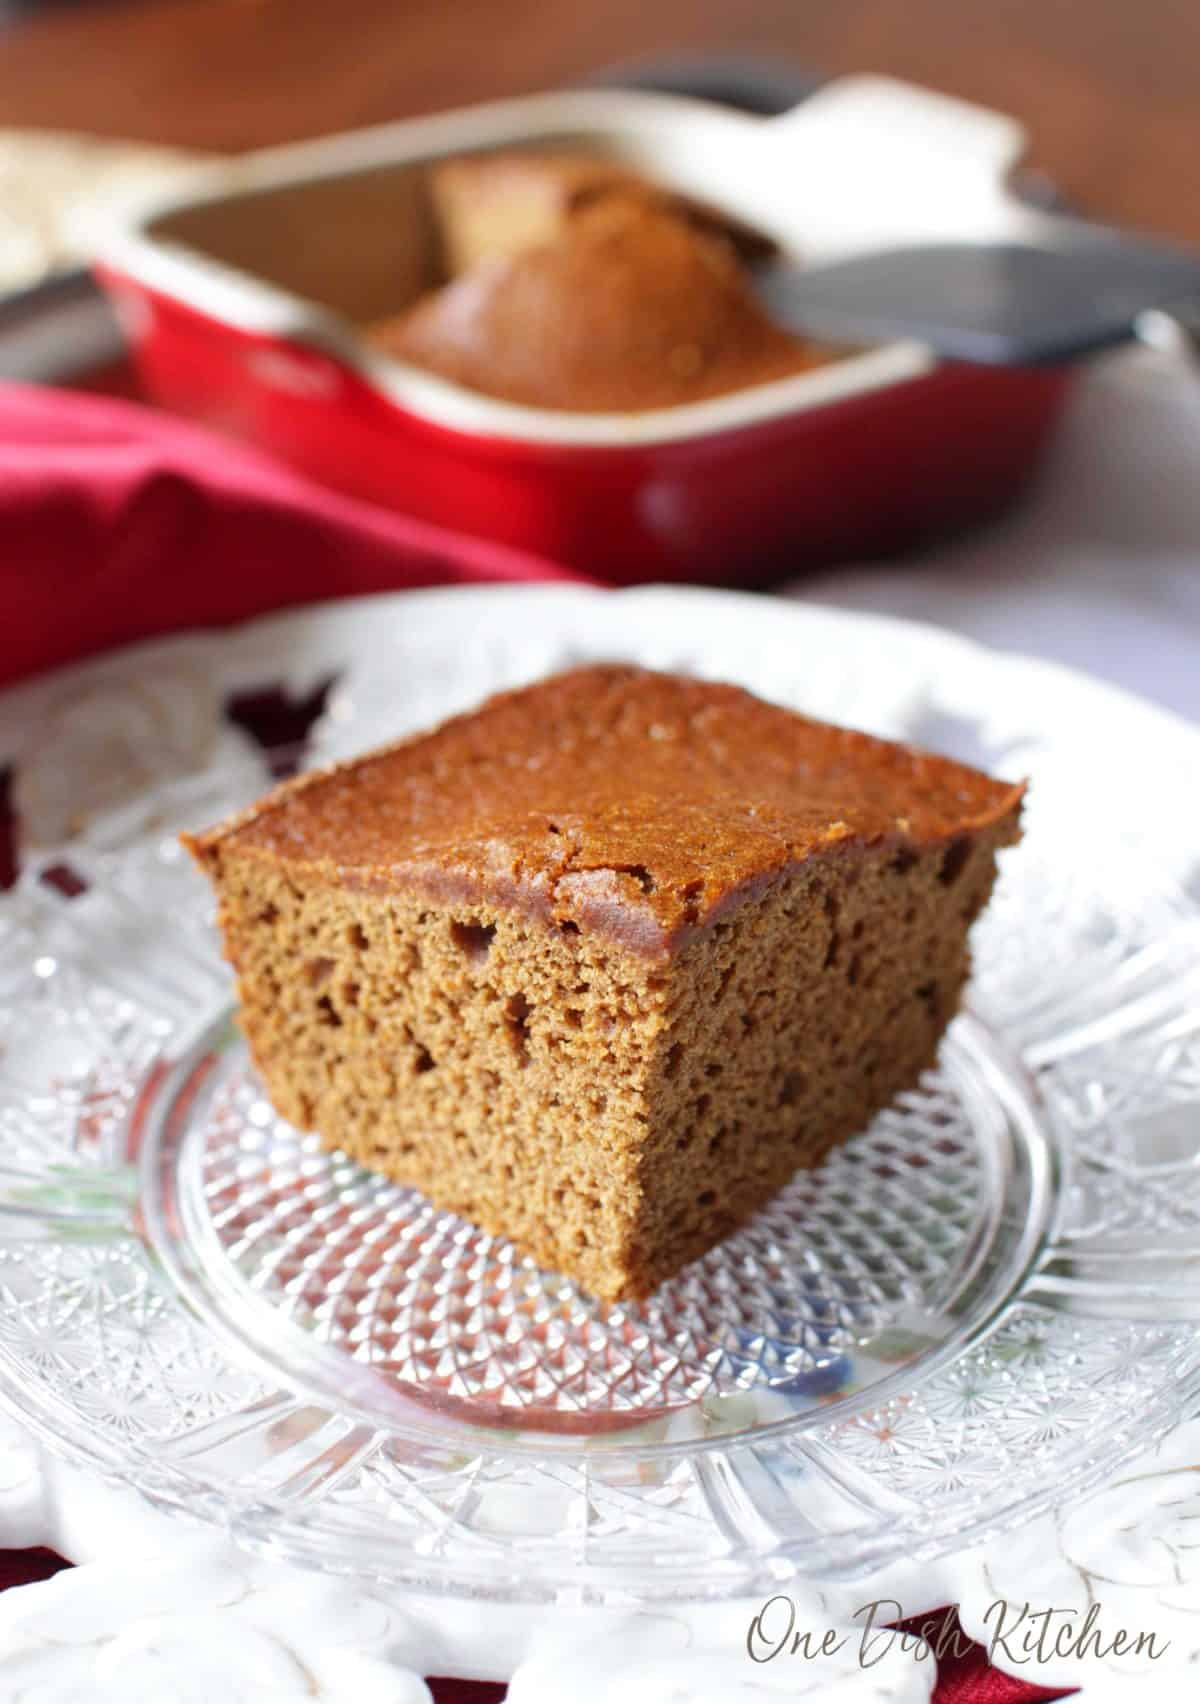 A square slice of gingerbread on a small plate with the baking dish in the background